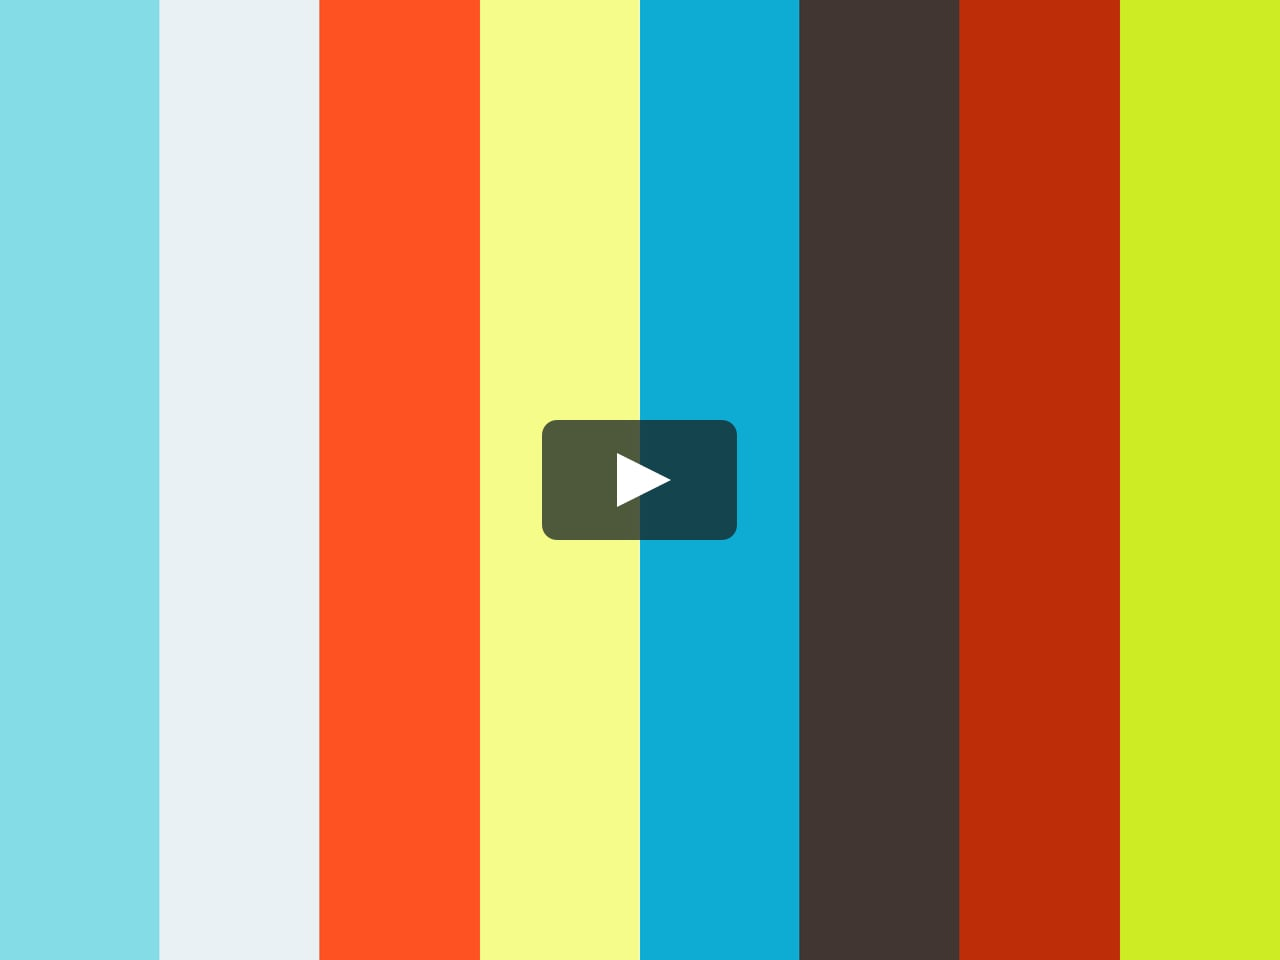 an analysis of the character janie crawford in the novel their eyes were watching god by zora neale  Get everything you need to know about nanny crawford in their eyes were watching their eyes were watching god by zora neale nanny crawford character analysis.